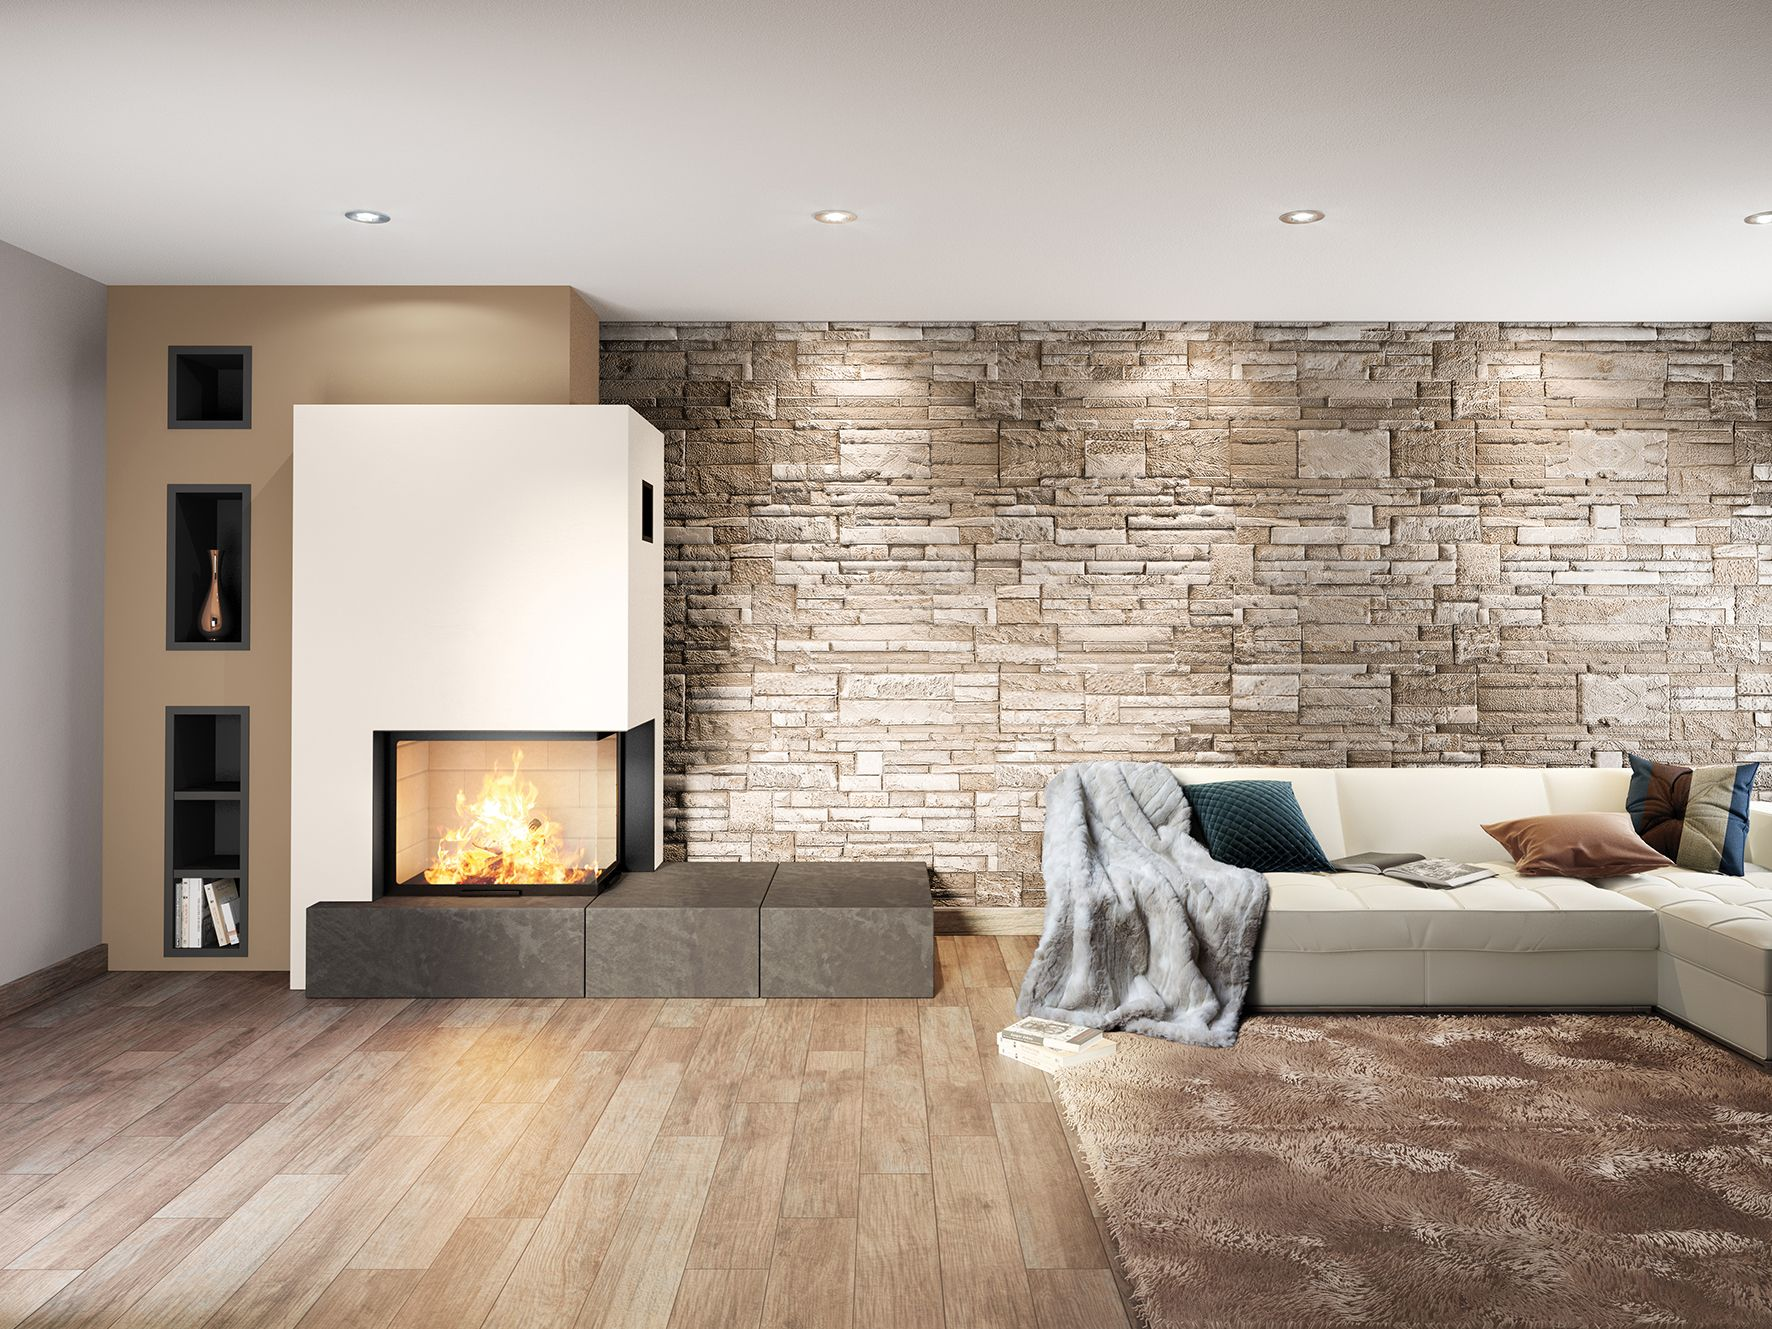 Axis h vld two sided fireplace made in france the axis h